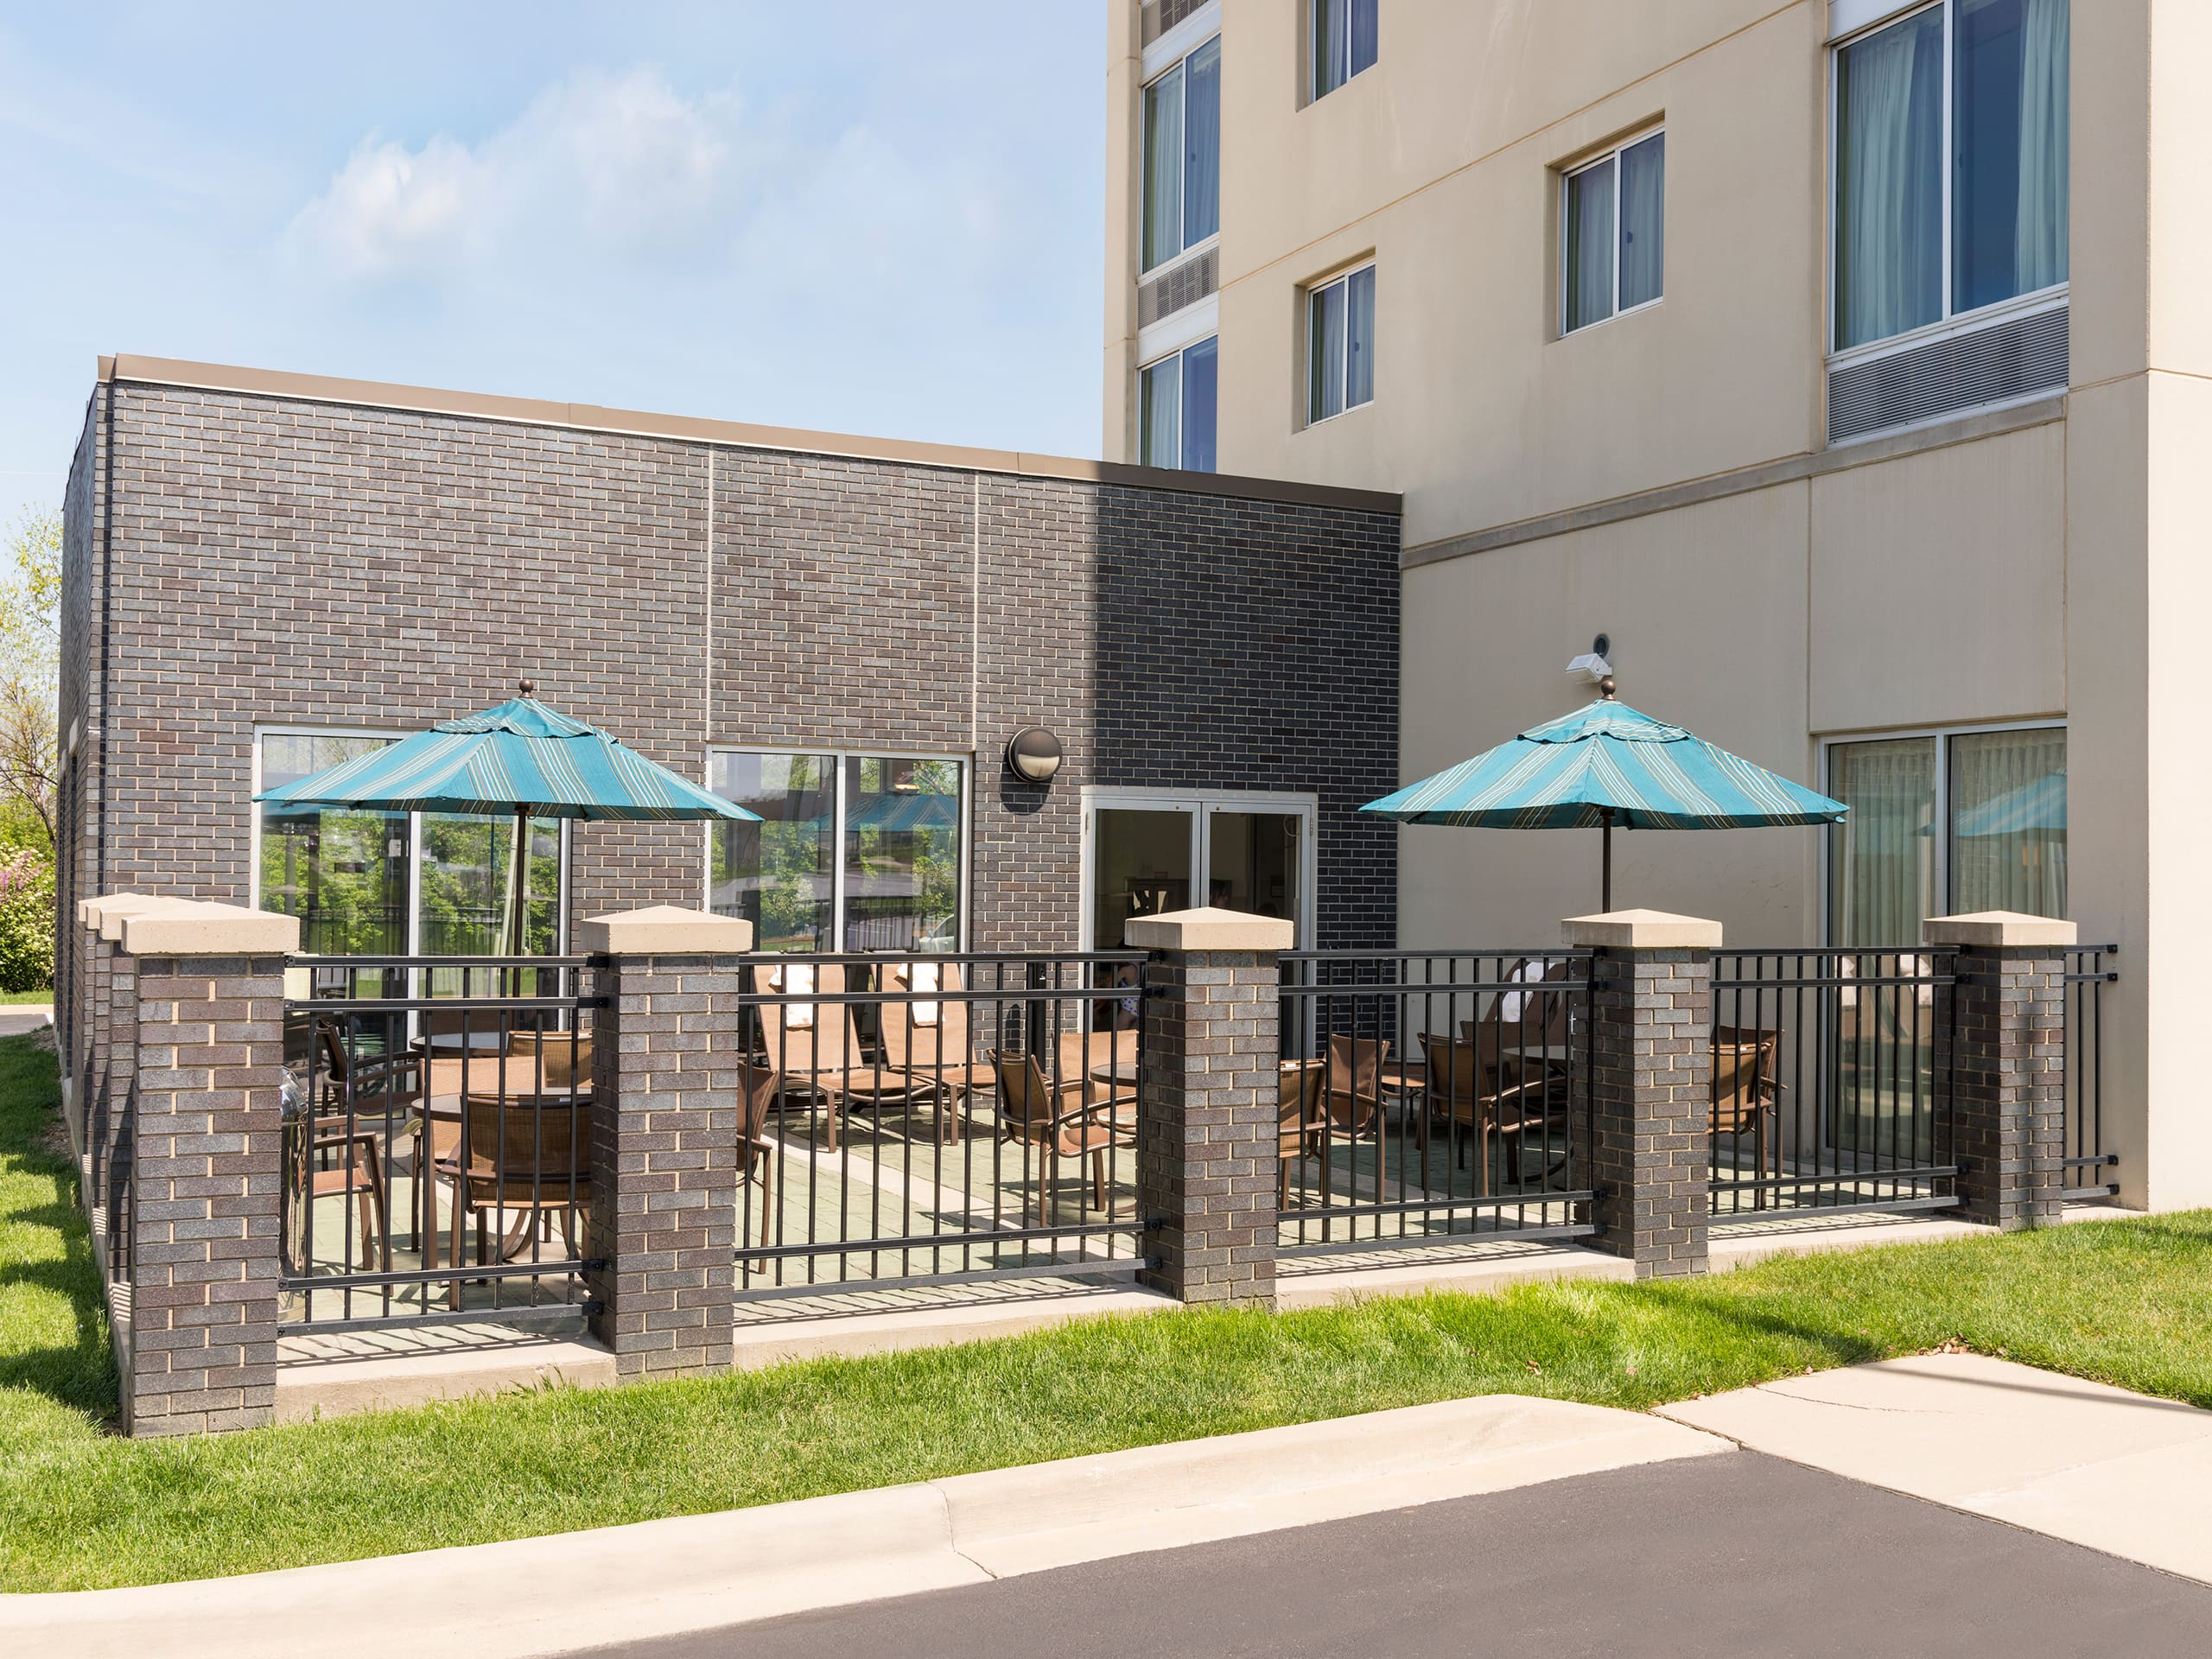 lexington hotel hyatt place rh hyatt com hyatt place lexington ky reviews hyatt place lexington ky address